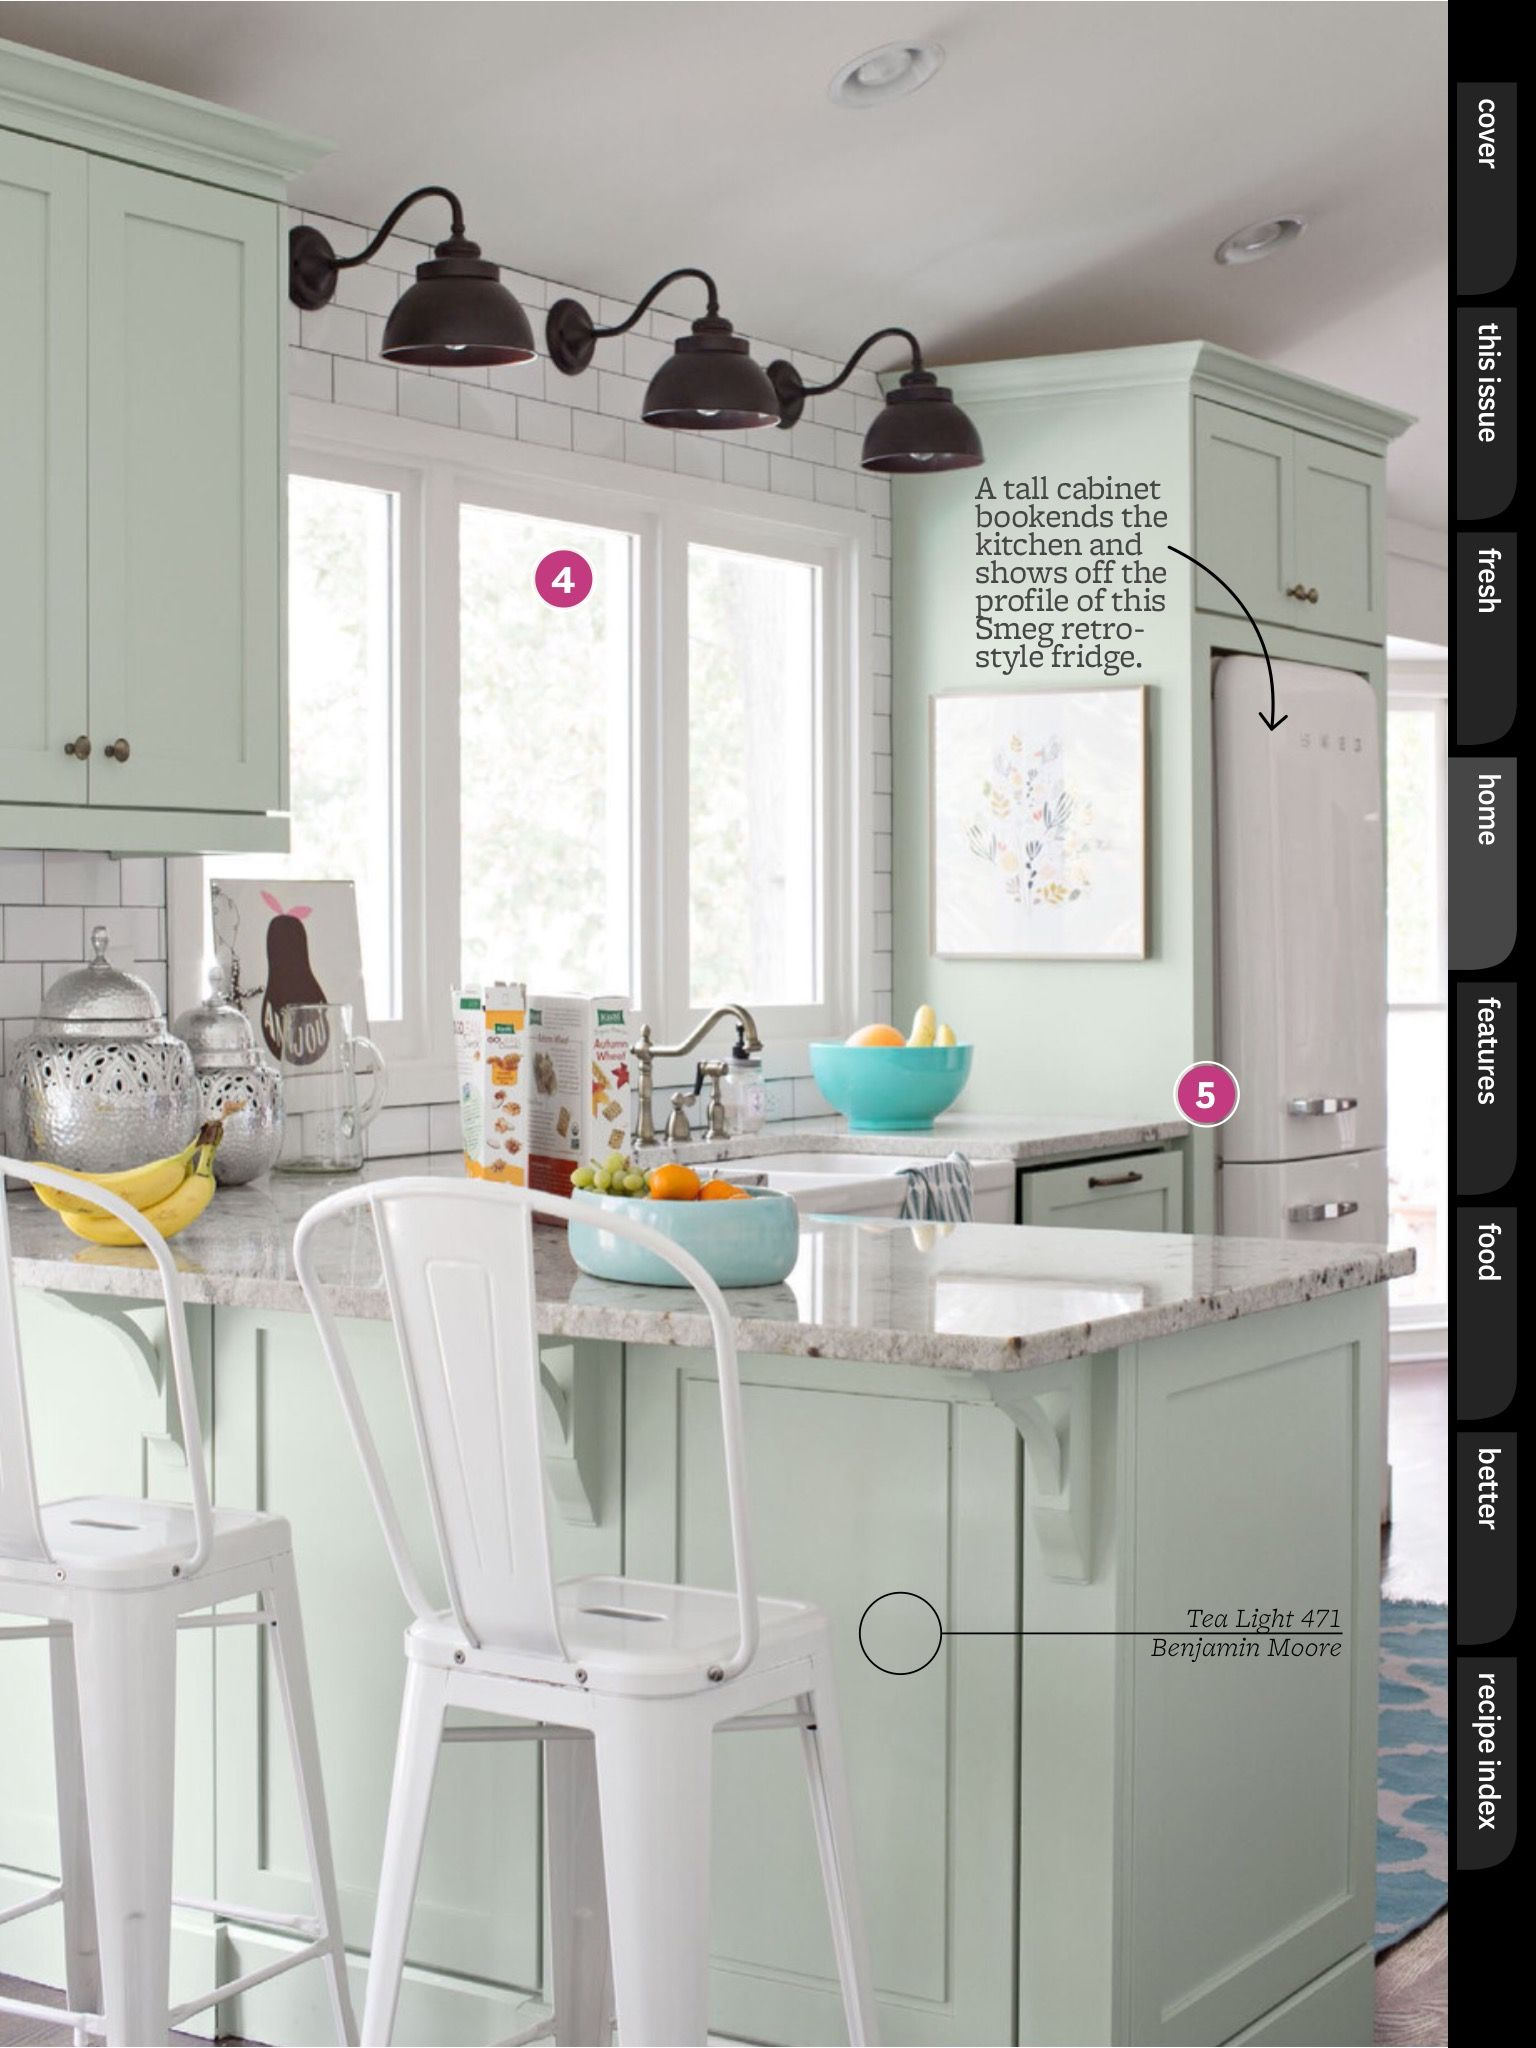 Pin by kathy cardy on kitchen ideas pinterest kitchens